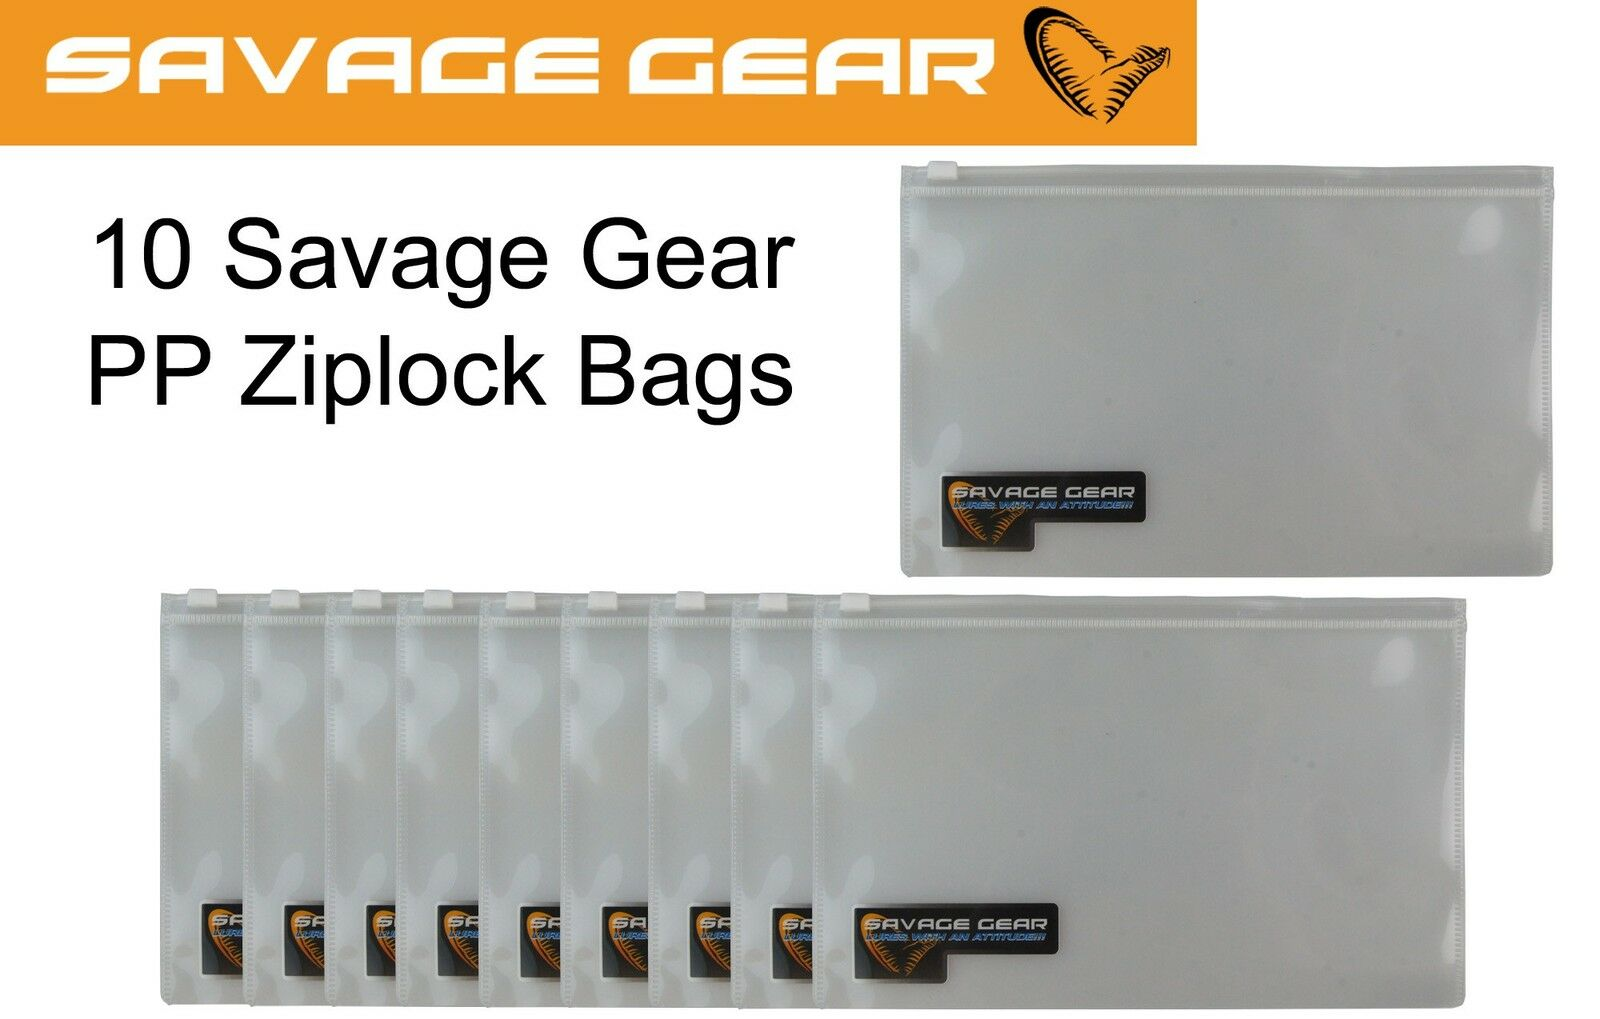 savage gear pp ziplock bags 10 beutel f r gummifische druckverschlussbeutel eur 5 99. Black Bedroom Furniture Sets. Home Design Ideas